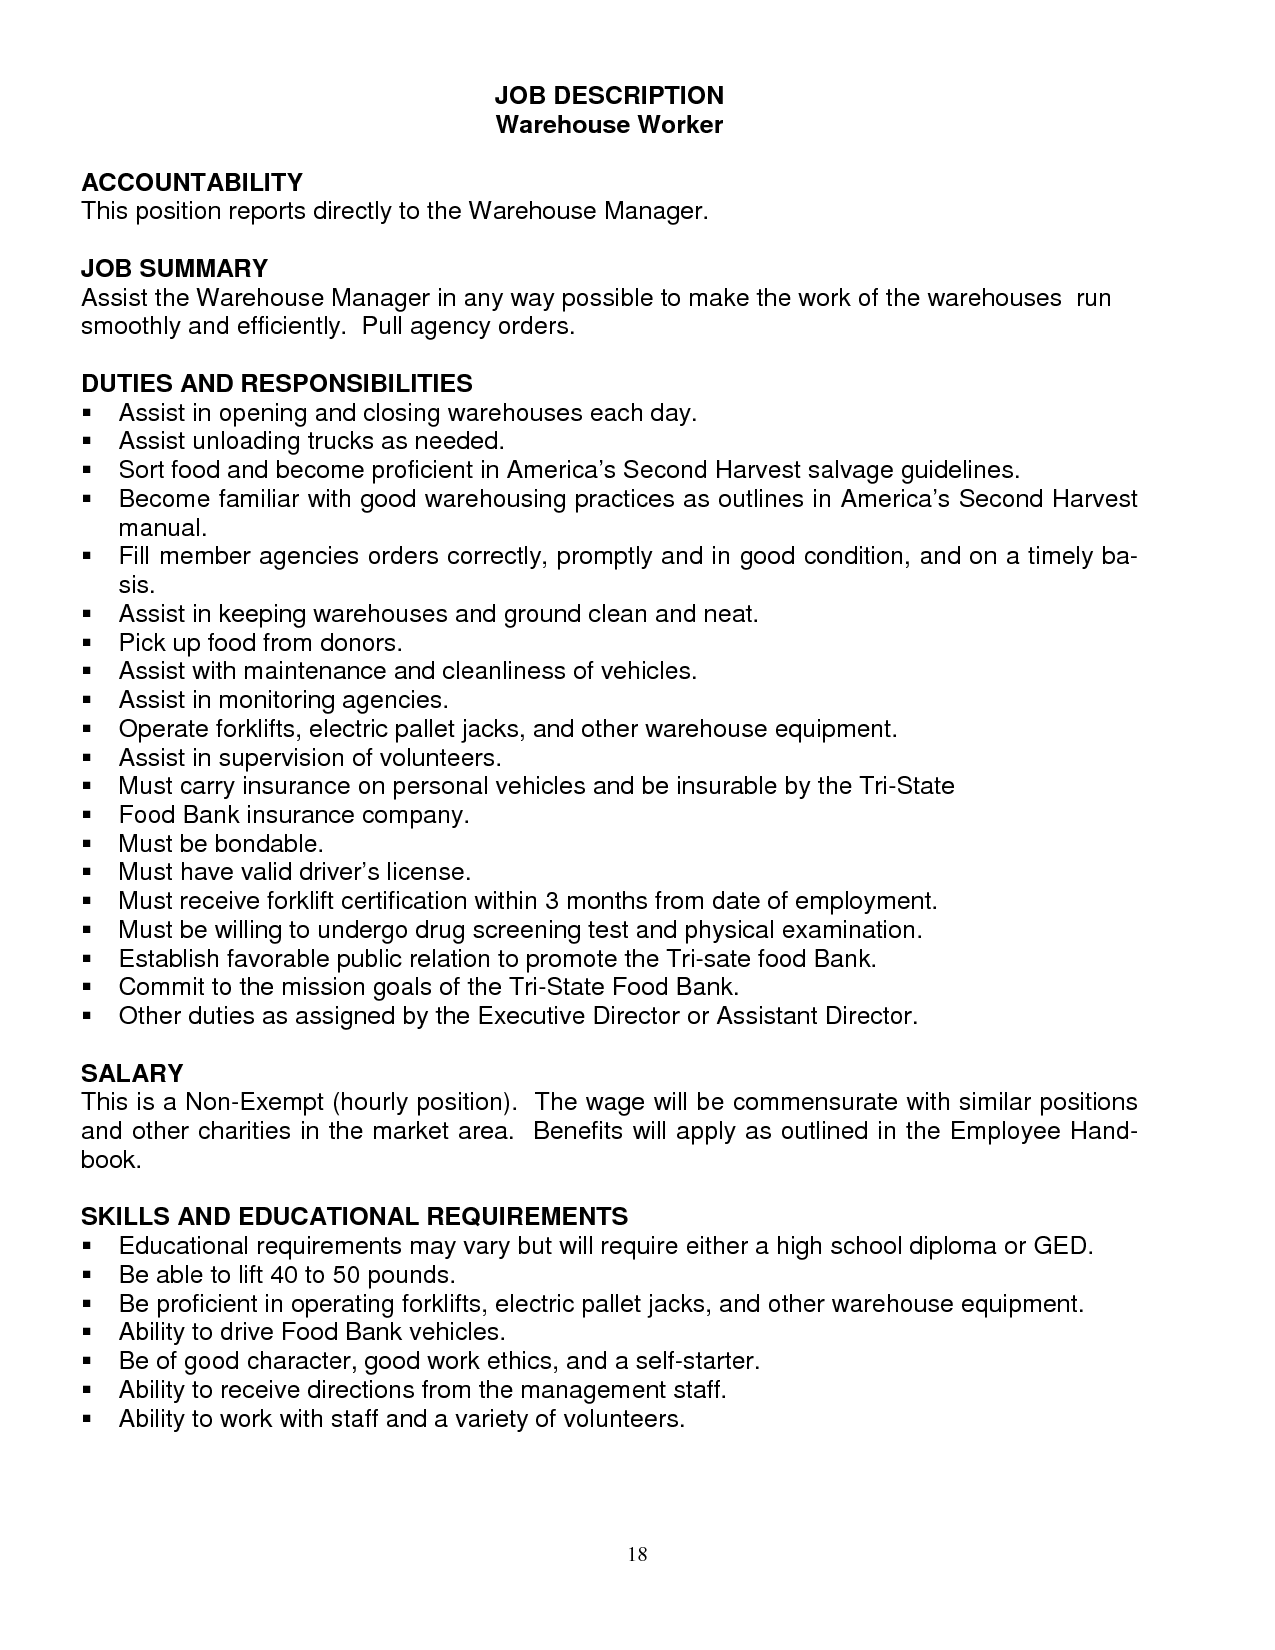 Job description template samples - Chief marketing officer job description ...